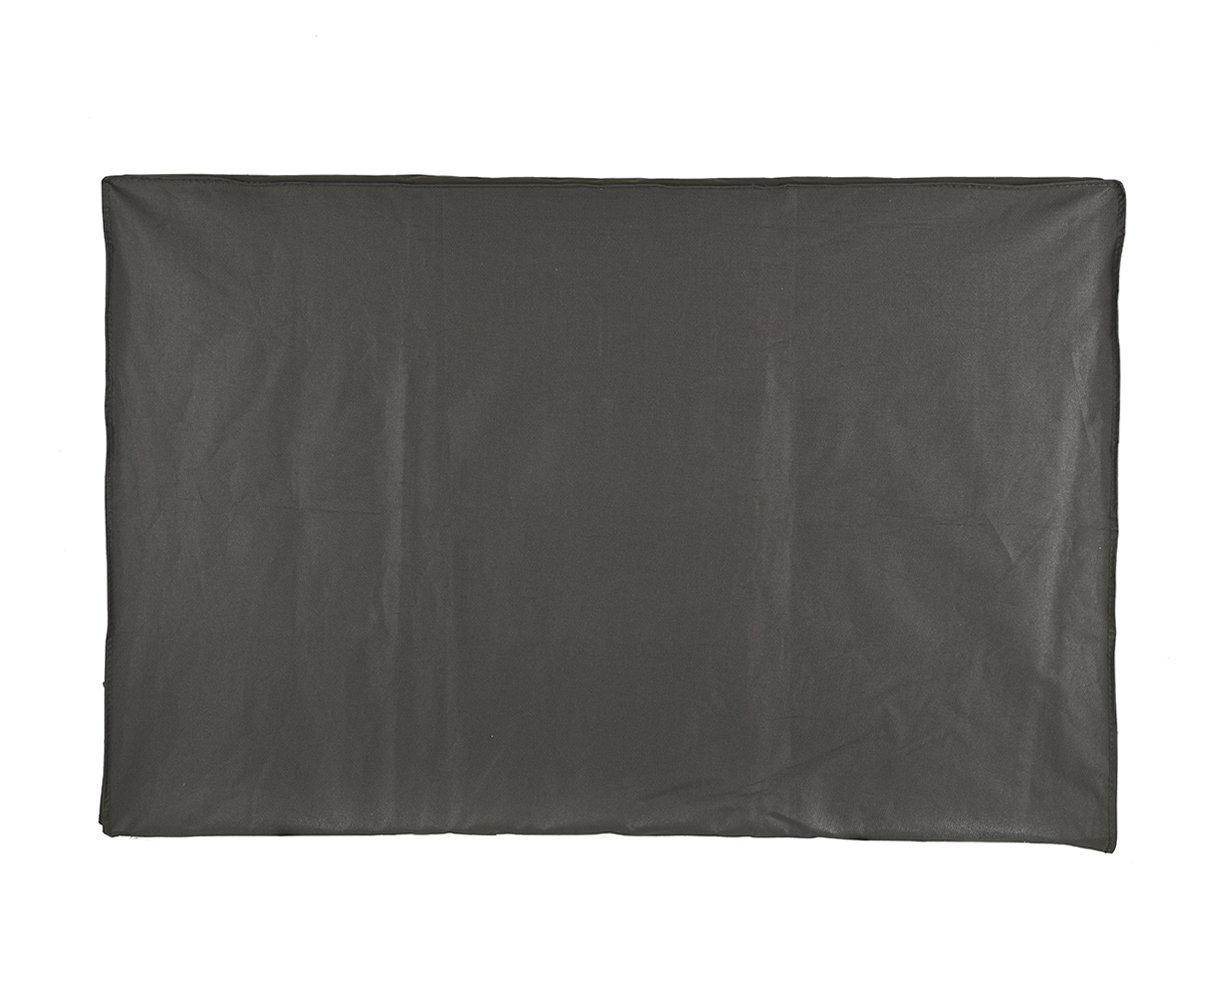 Patio Watcher Waterproof Outdoor TV Cover 40-42 Inches,Fits Most TV Mounts and Stands, Grey